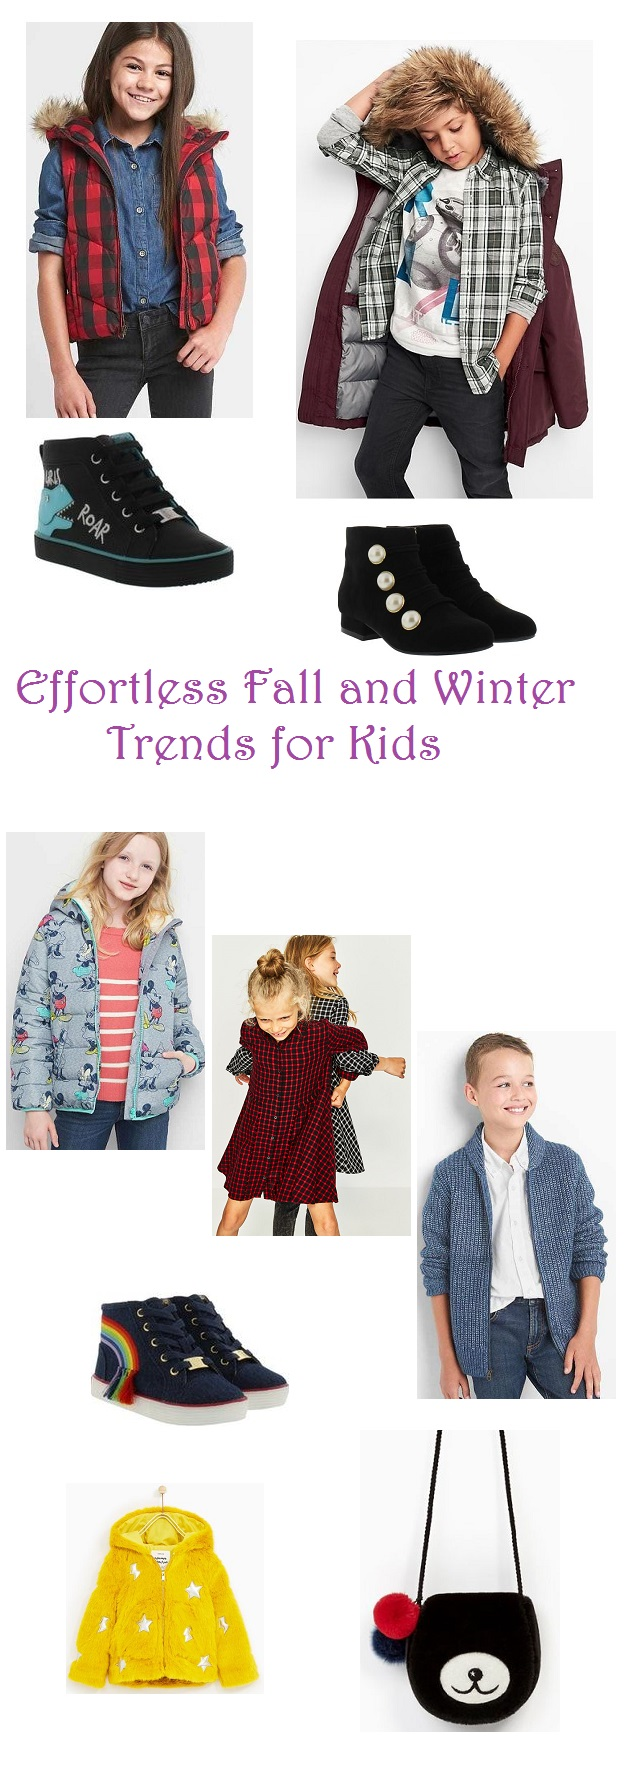 Fabzlist Fall winter fashion kids 1